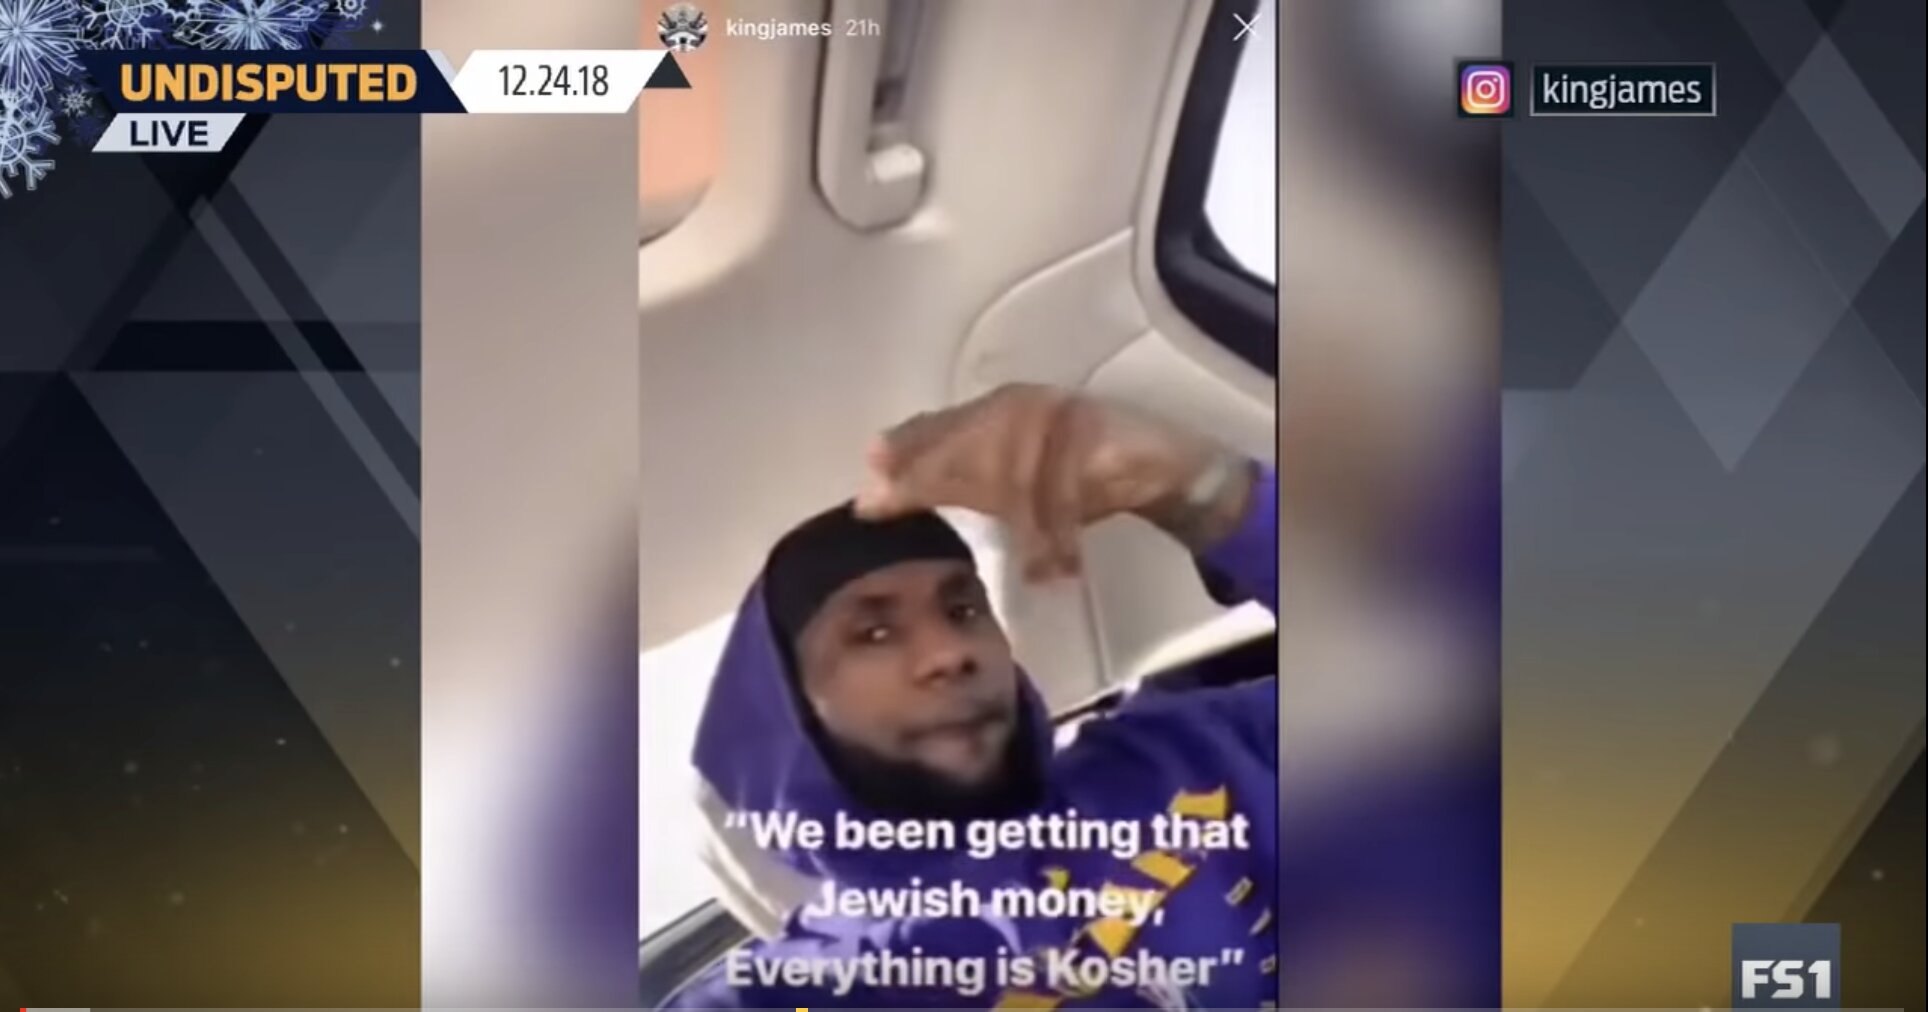 LeBron James apologizes for Instagram post quoting 'Jewish money' lyrics | UNDISPUTED